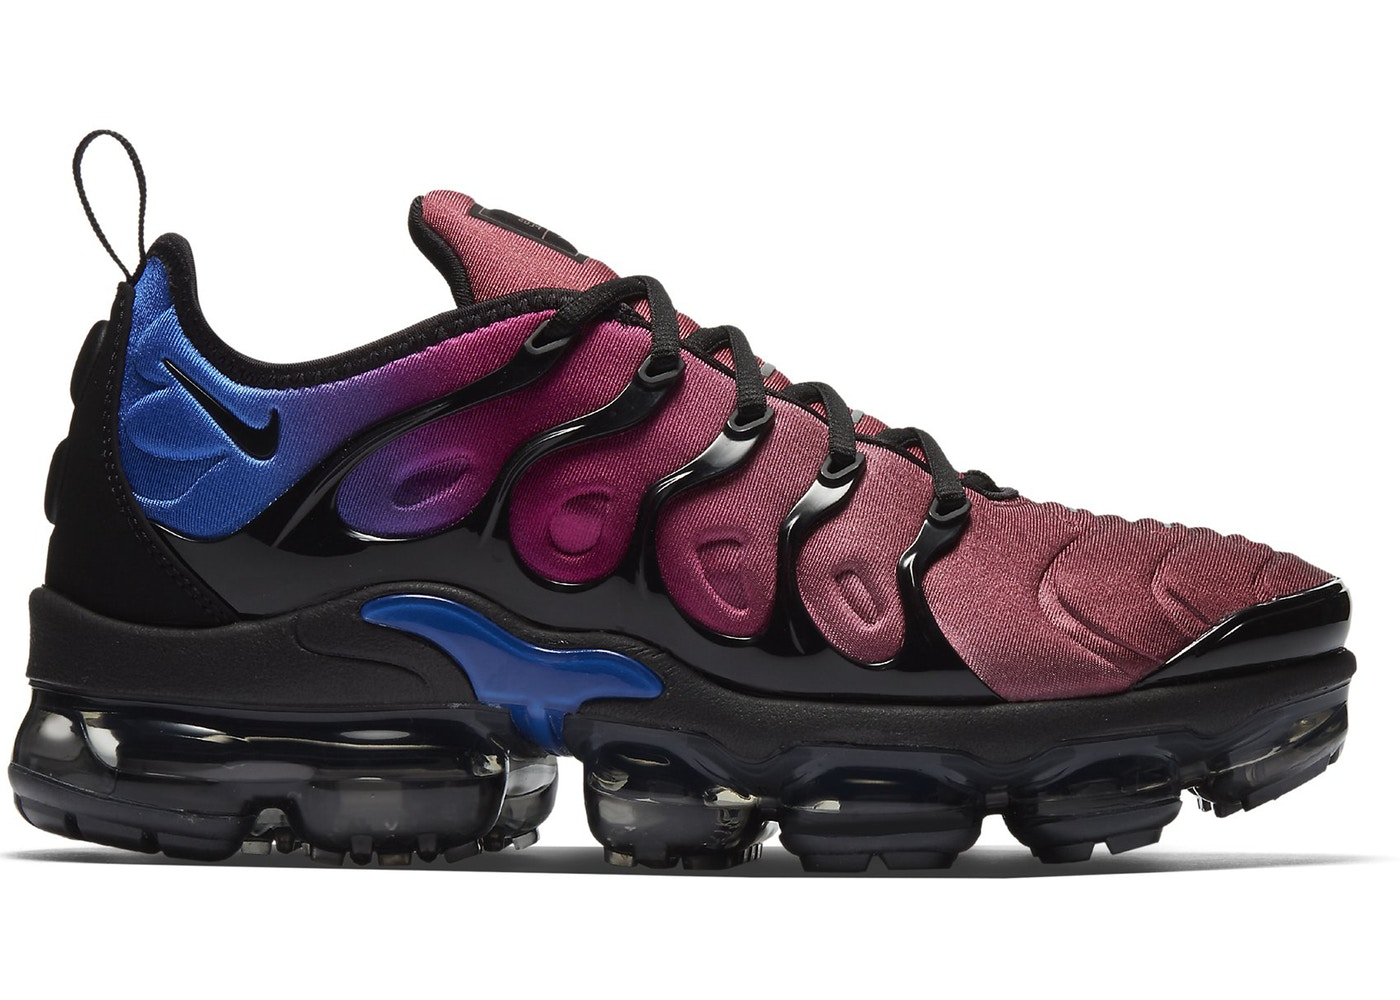 8592d4e6432df Air VaporMax Plus Black Team Red Hyper Violet (W) - AO4550-001